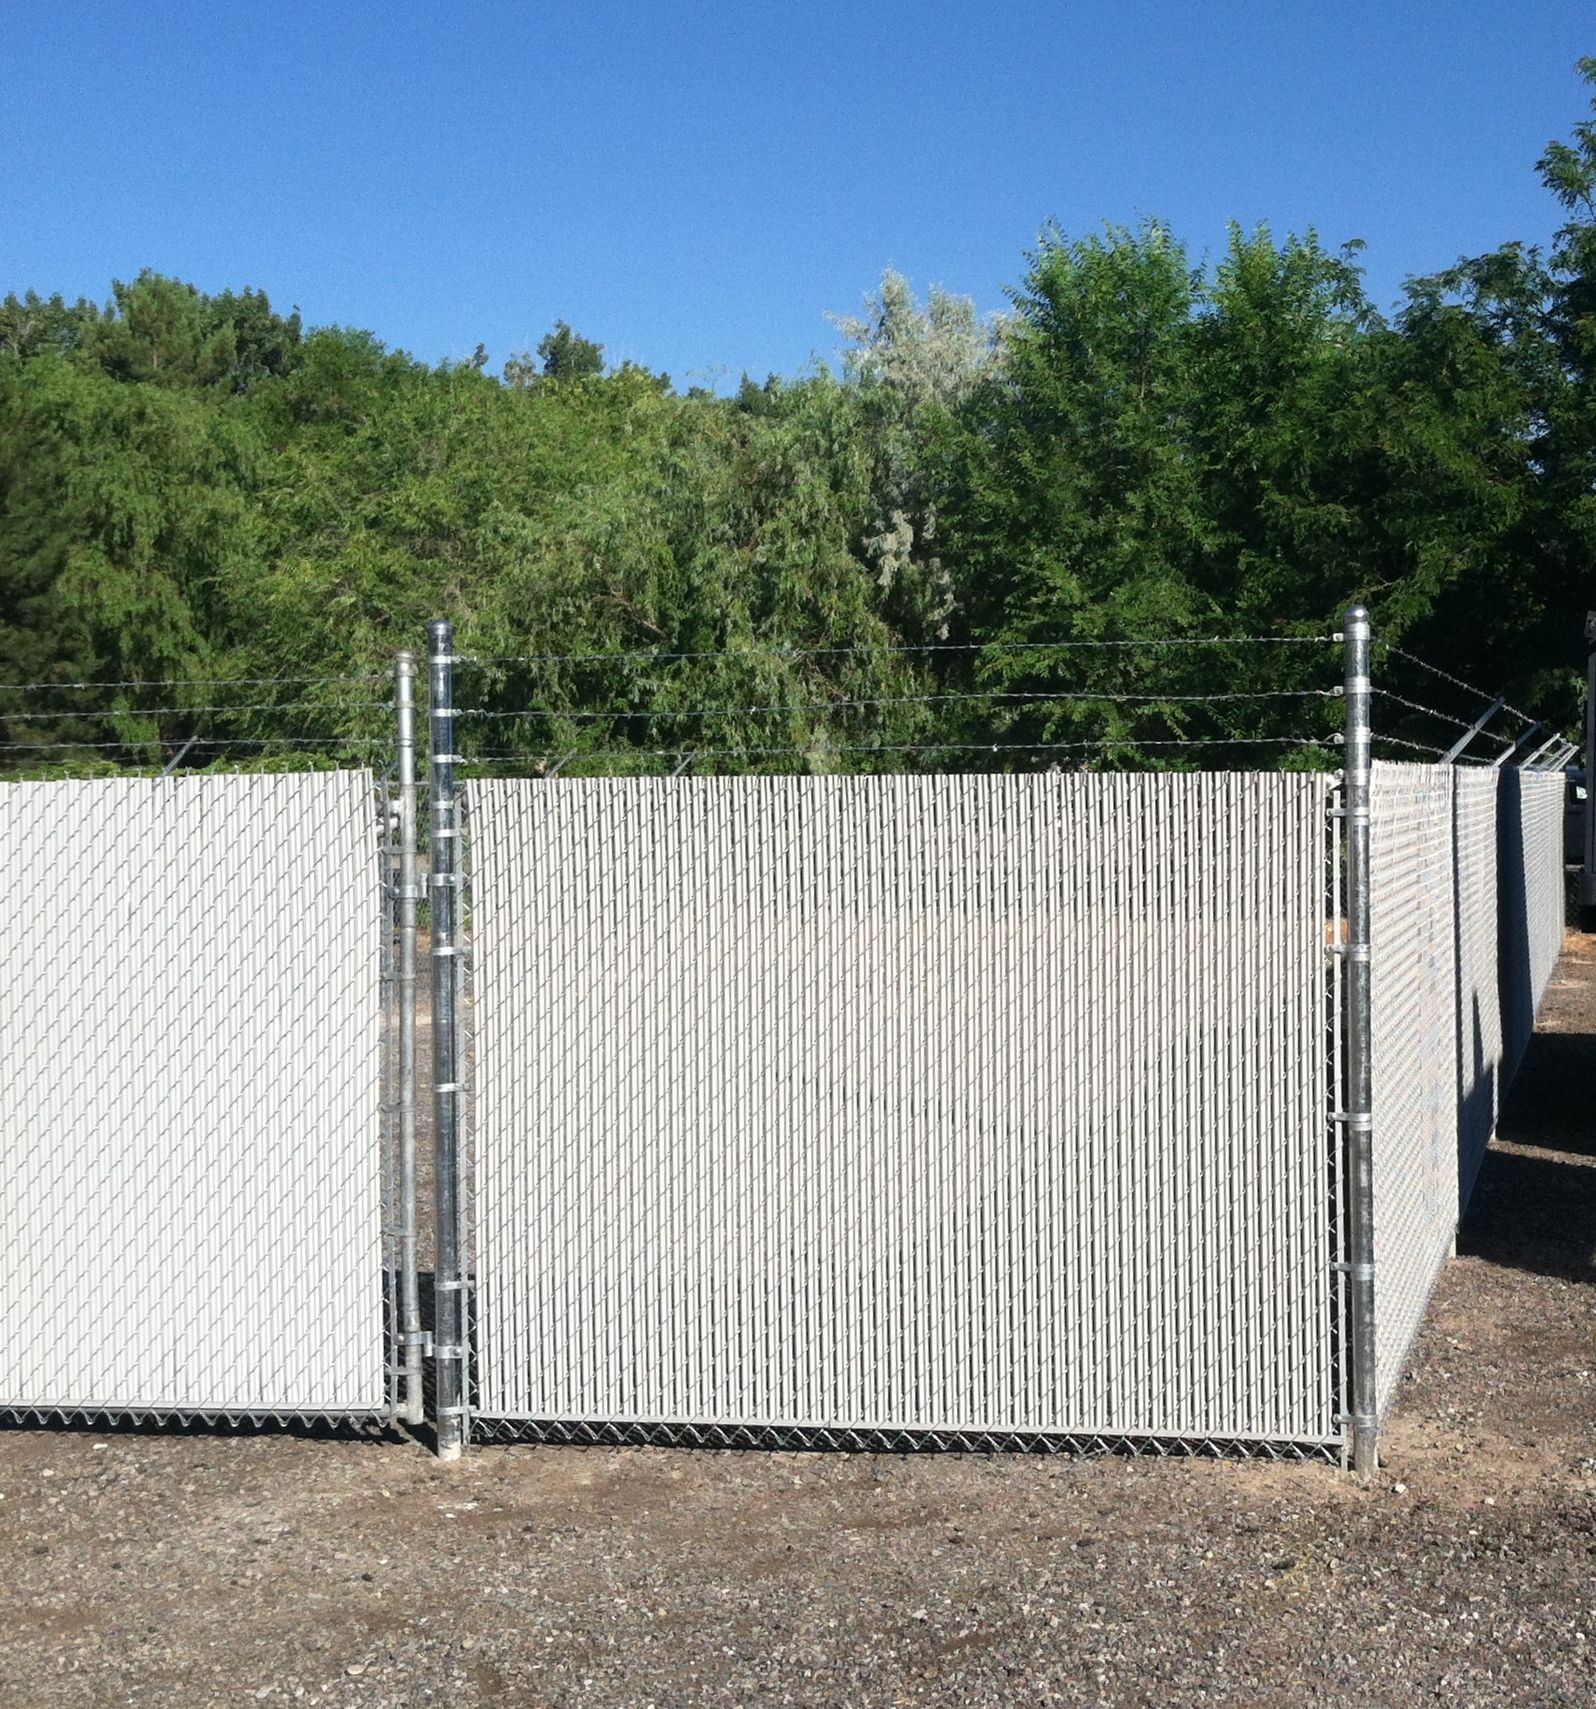 3 Strand Barbed Wire Chain Link Fence with White Privacy Slats ...